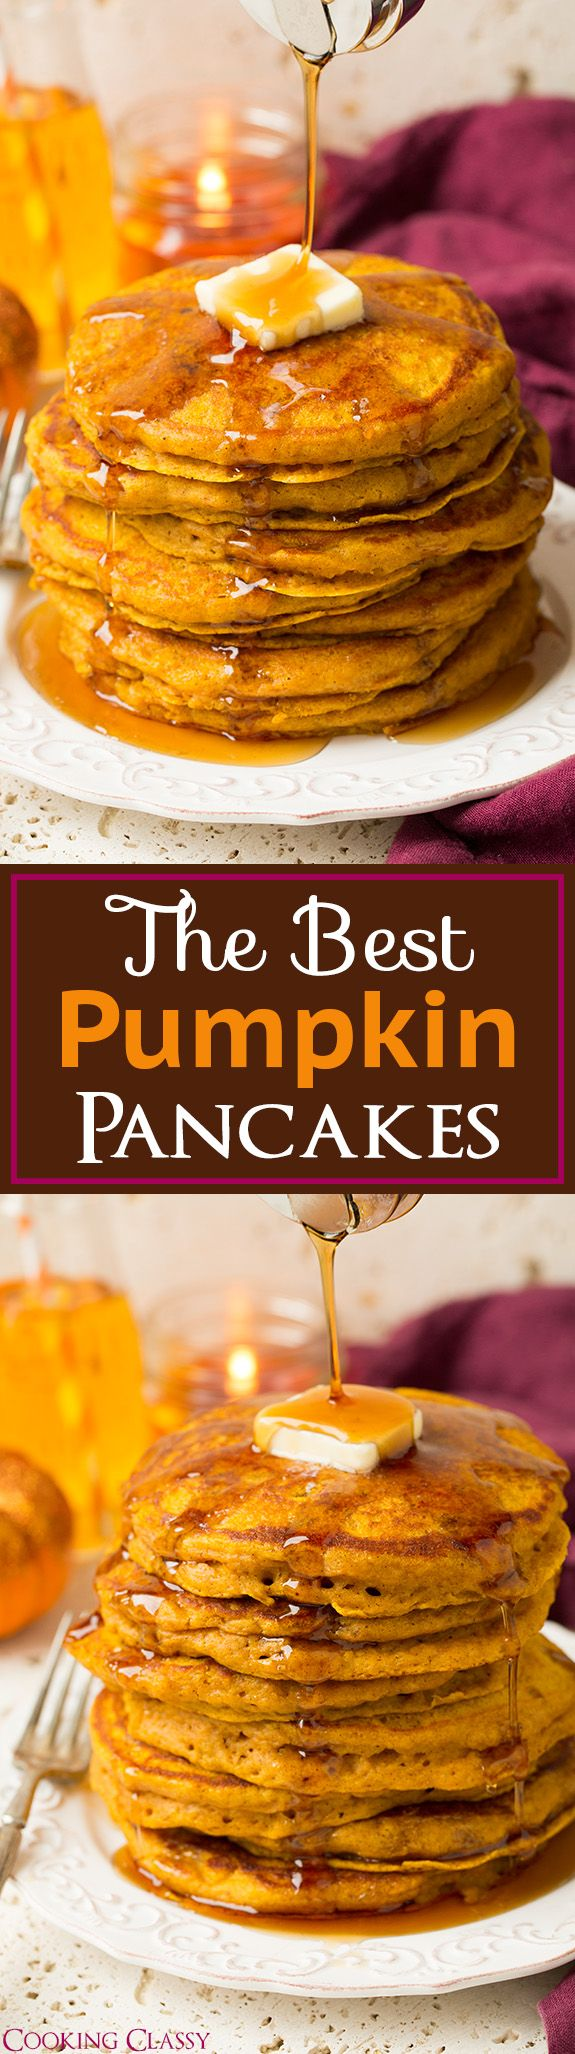 Pumpkin Pancakes - these are TO DIE FOR! My mom said they were the best pancakes she's ever eaten! Best fall pancakes ever!